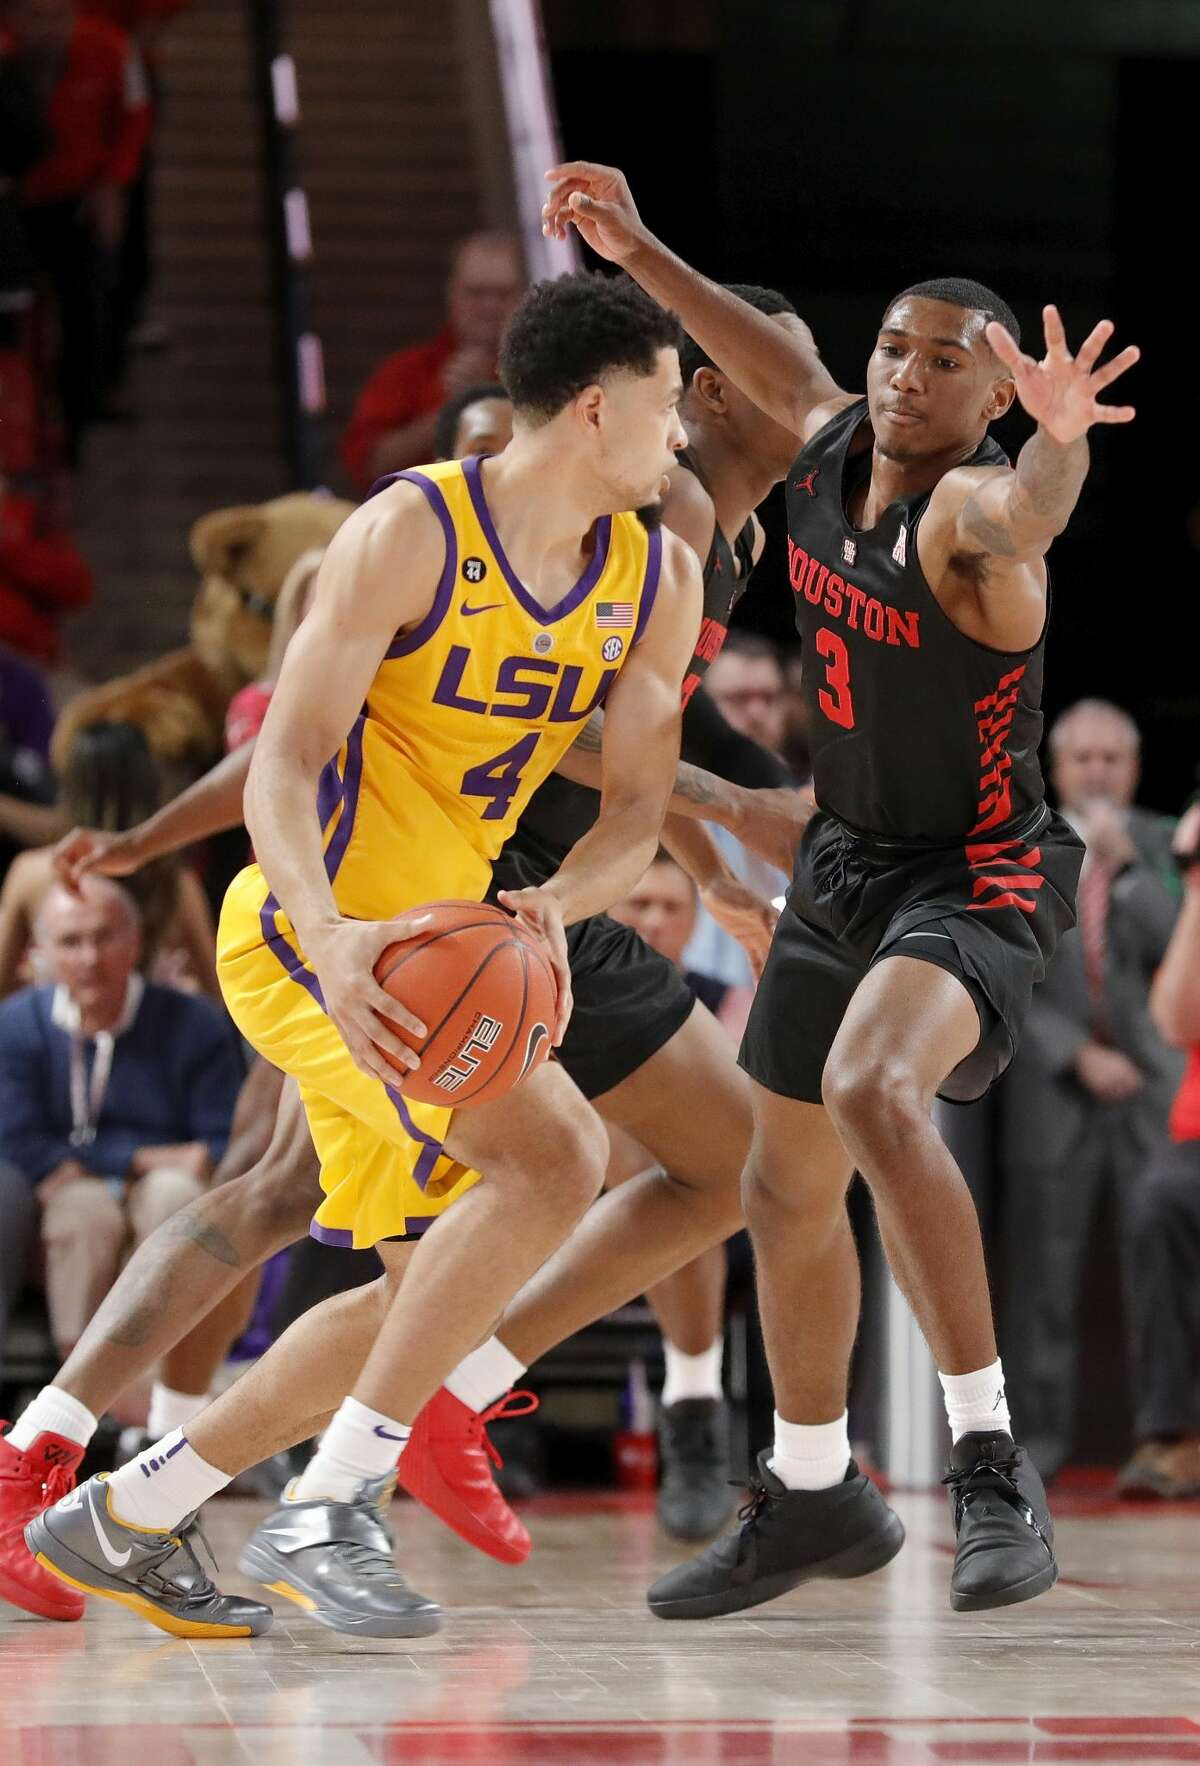 Houston Cougars guard Armoni Brooks (3) defends LSU Tigers guard Skylar Mays (4) during the second half of the NCAA basketball game between the Houston Cougars and the LSU Tigers at the Fertitta Center in Houston, TX on Wednesday, December 12, 2018. Houston defeated LSU 82-76.